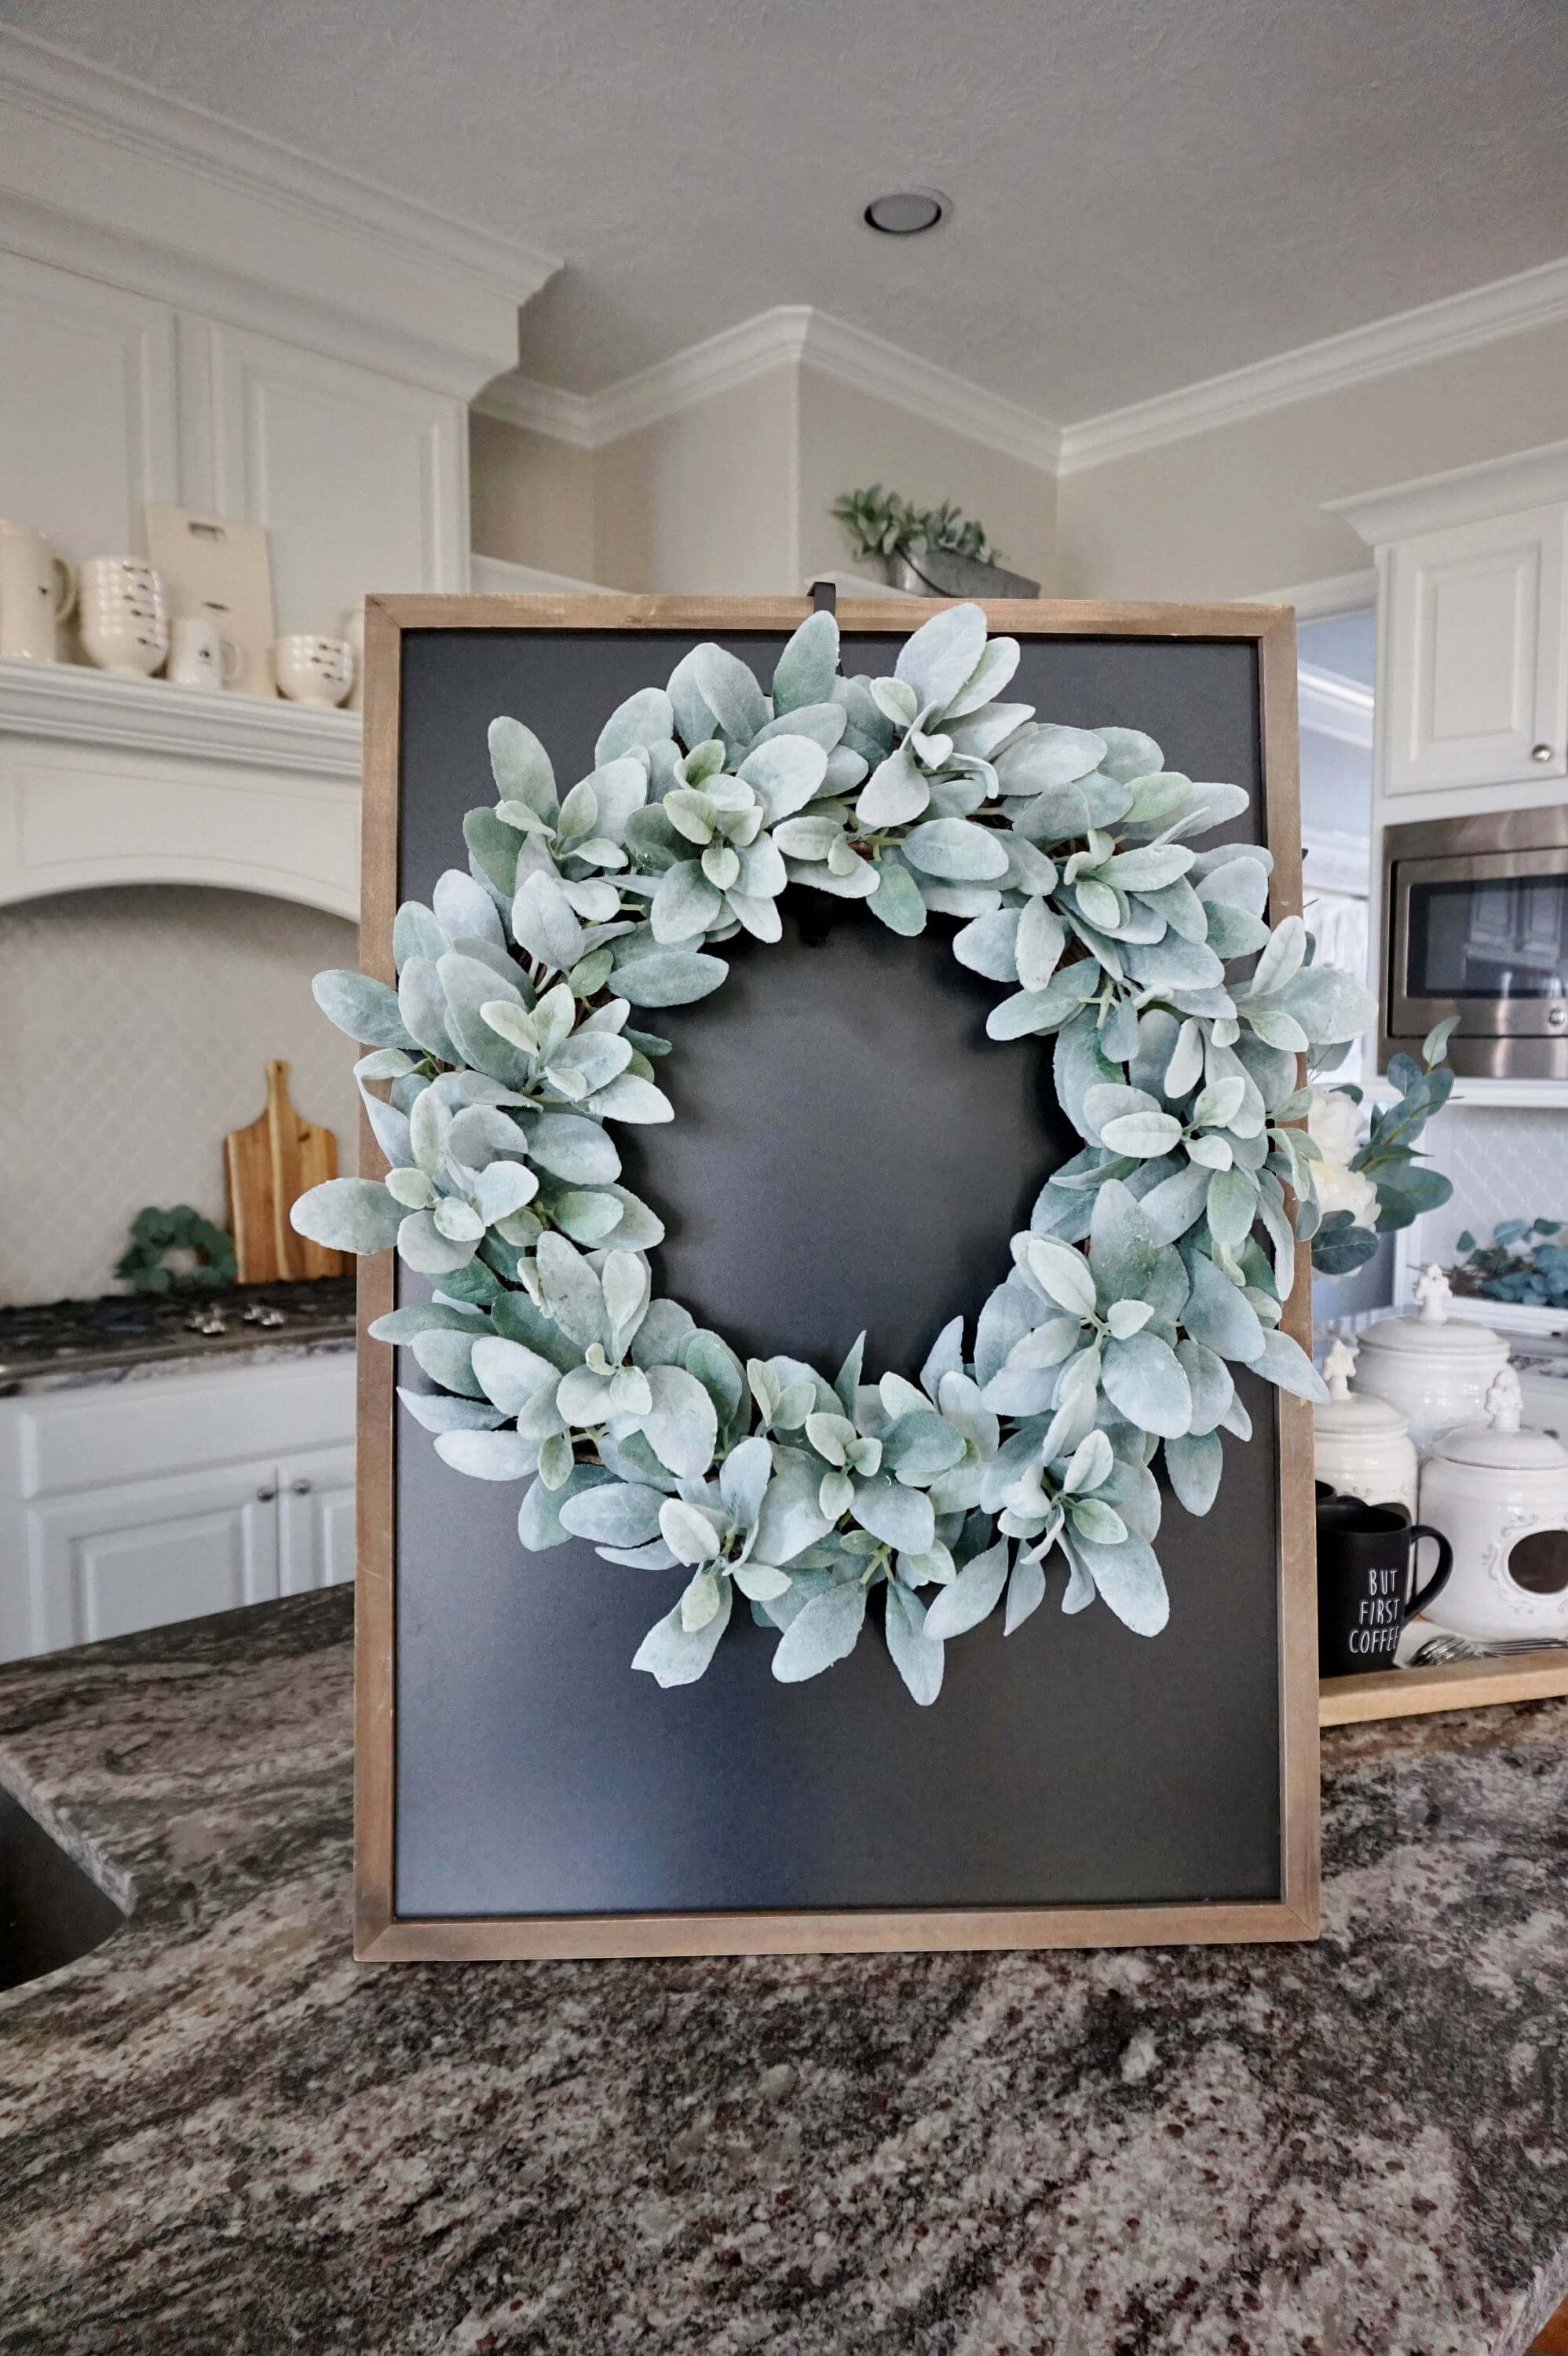 Sage Green Leaves with a Chalkboard Backing